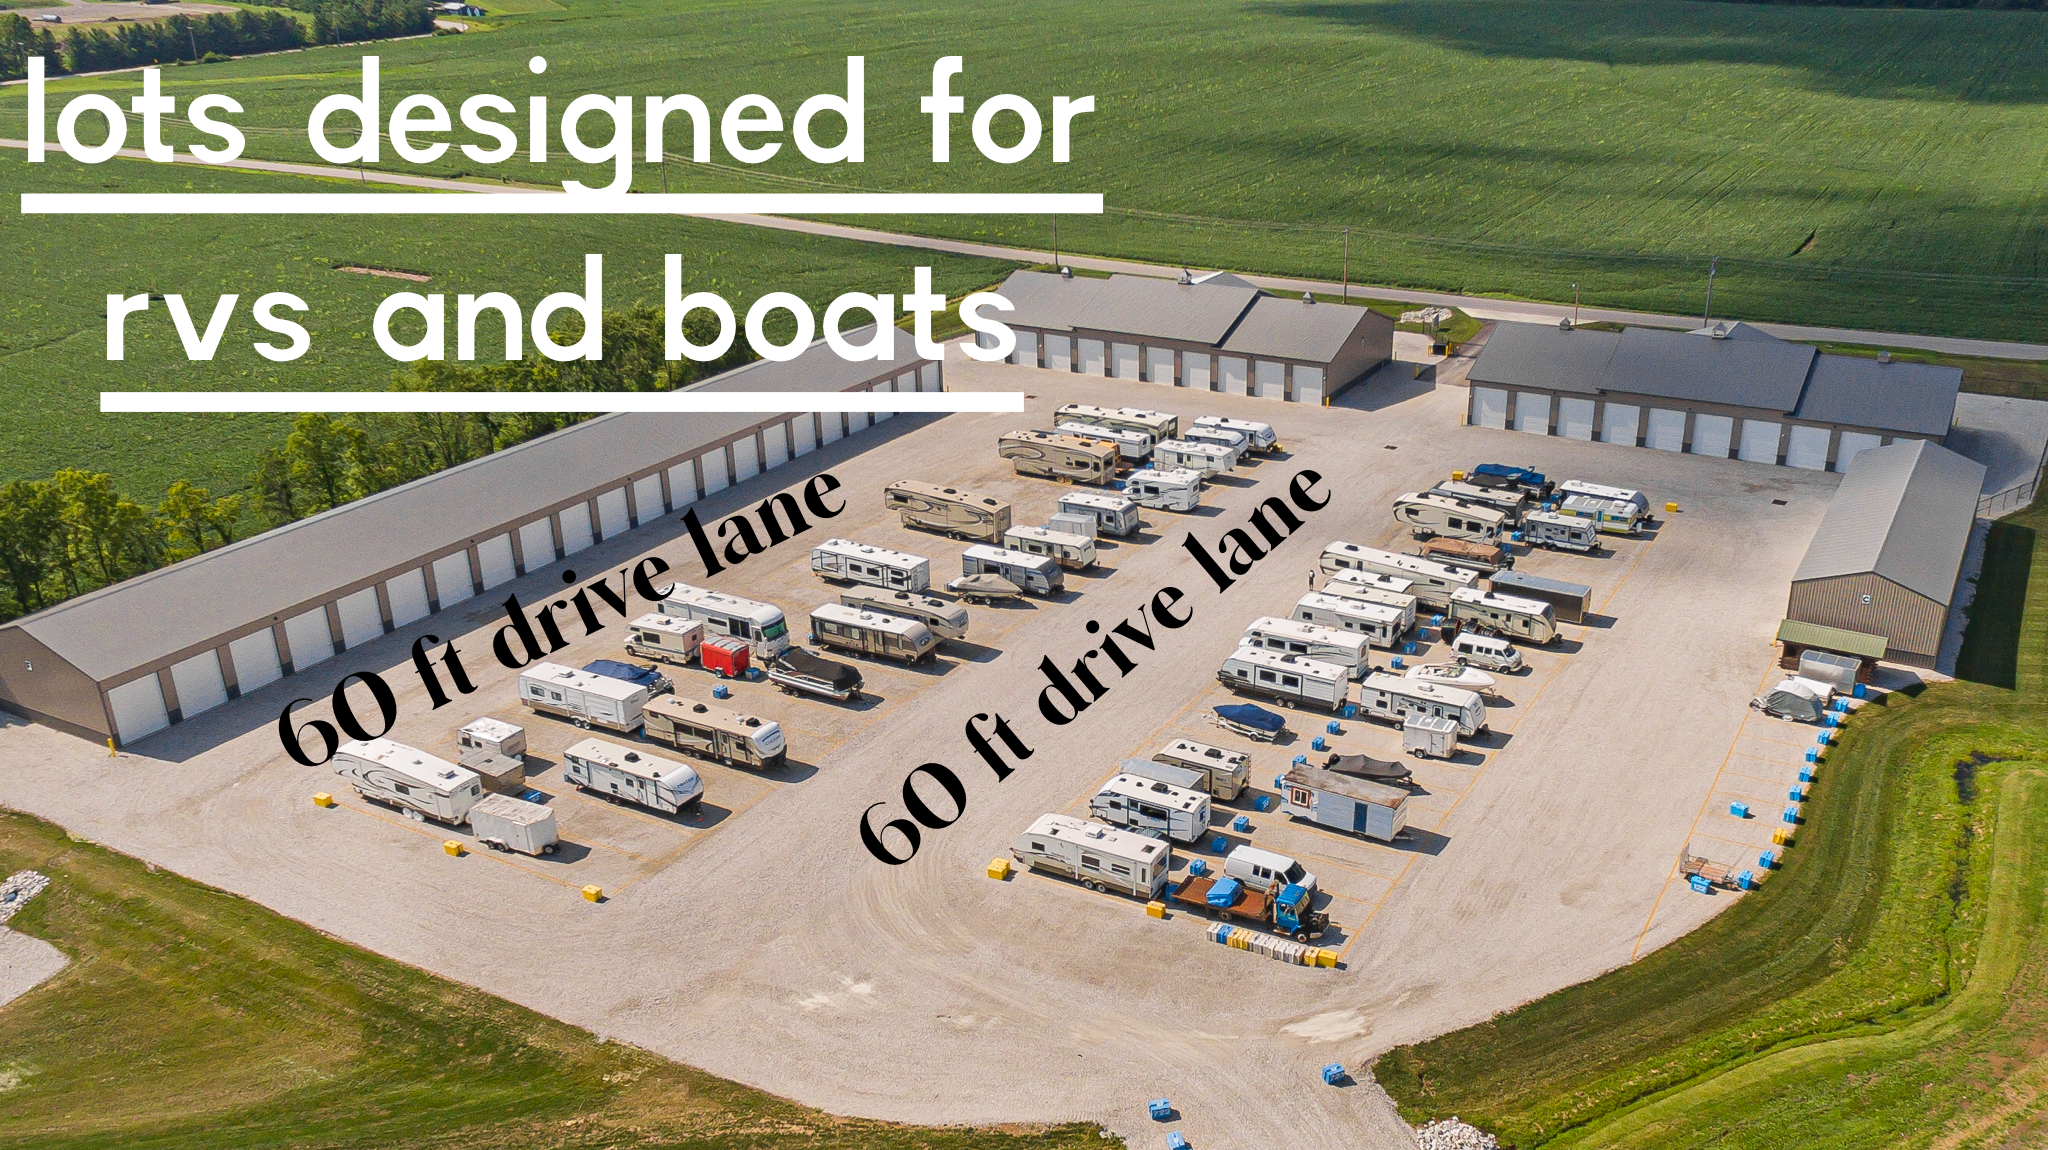 Designed for RVs and boats